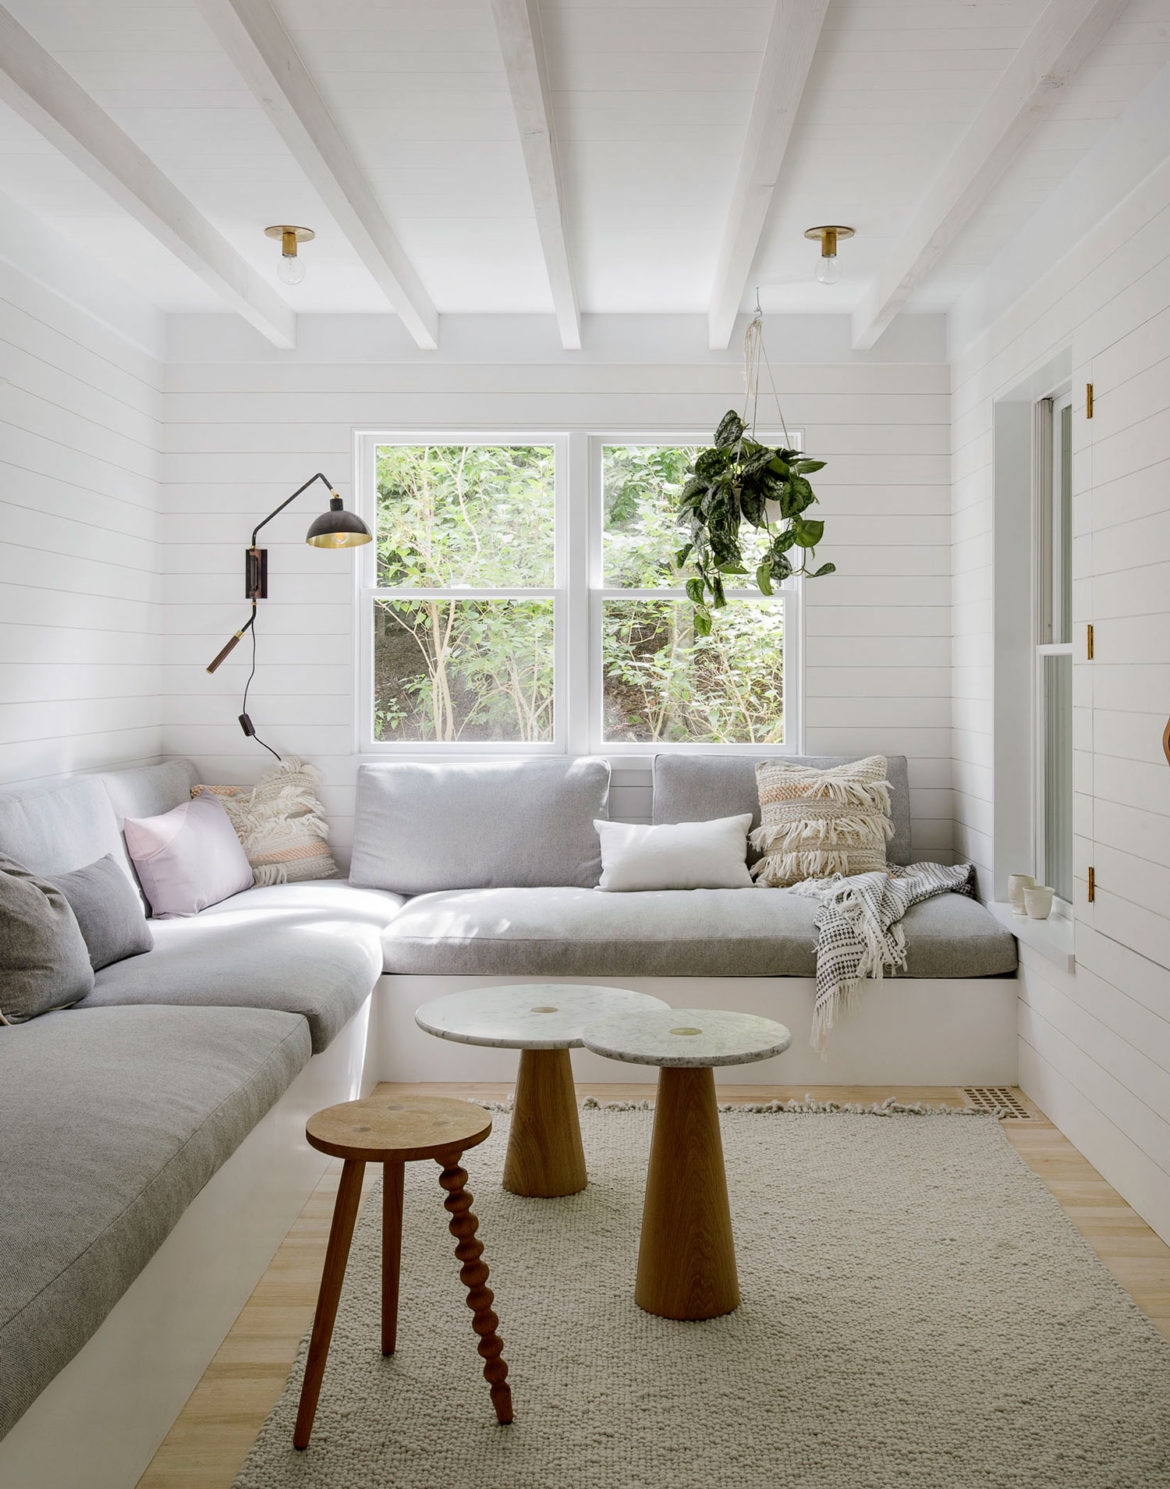 ... Whitened Wood, Marble, Brass, Minimal Scandinavian Accents And The  Peaceful Atmosphere Has Been Renovated By Jessica Helgerson Interior Design.